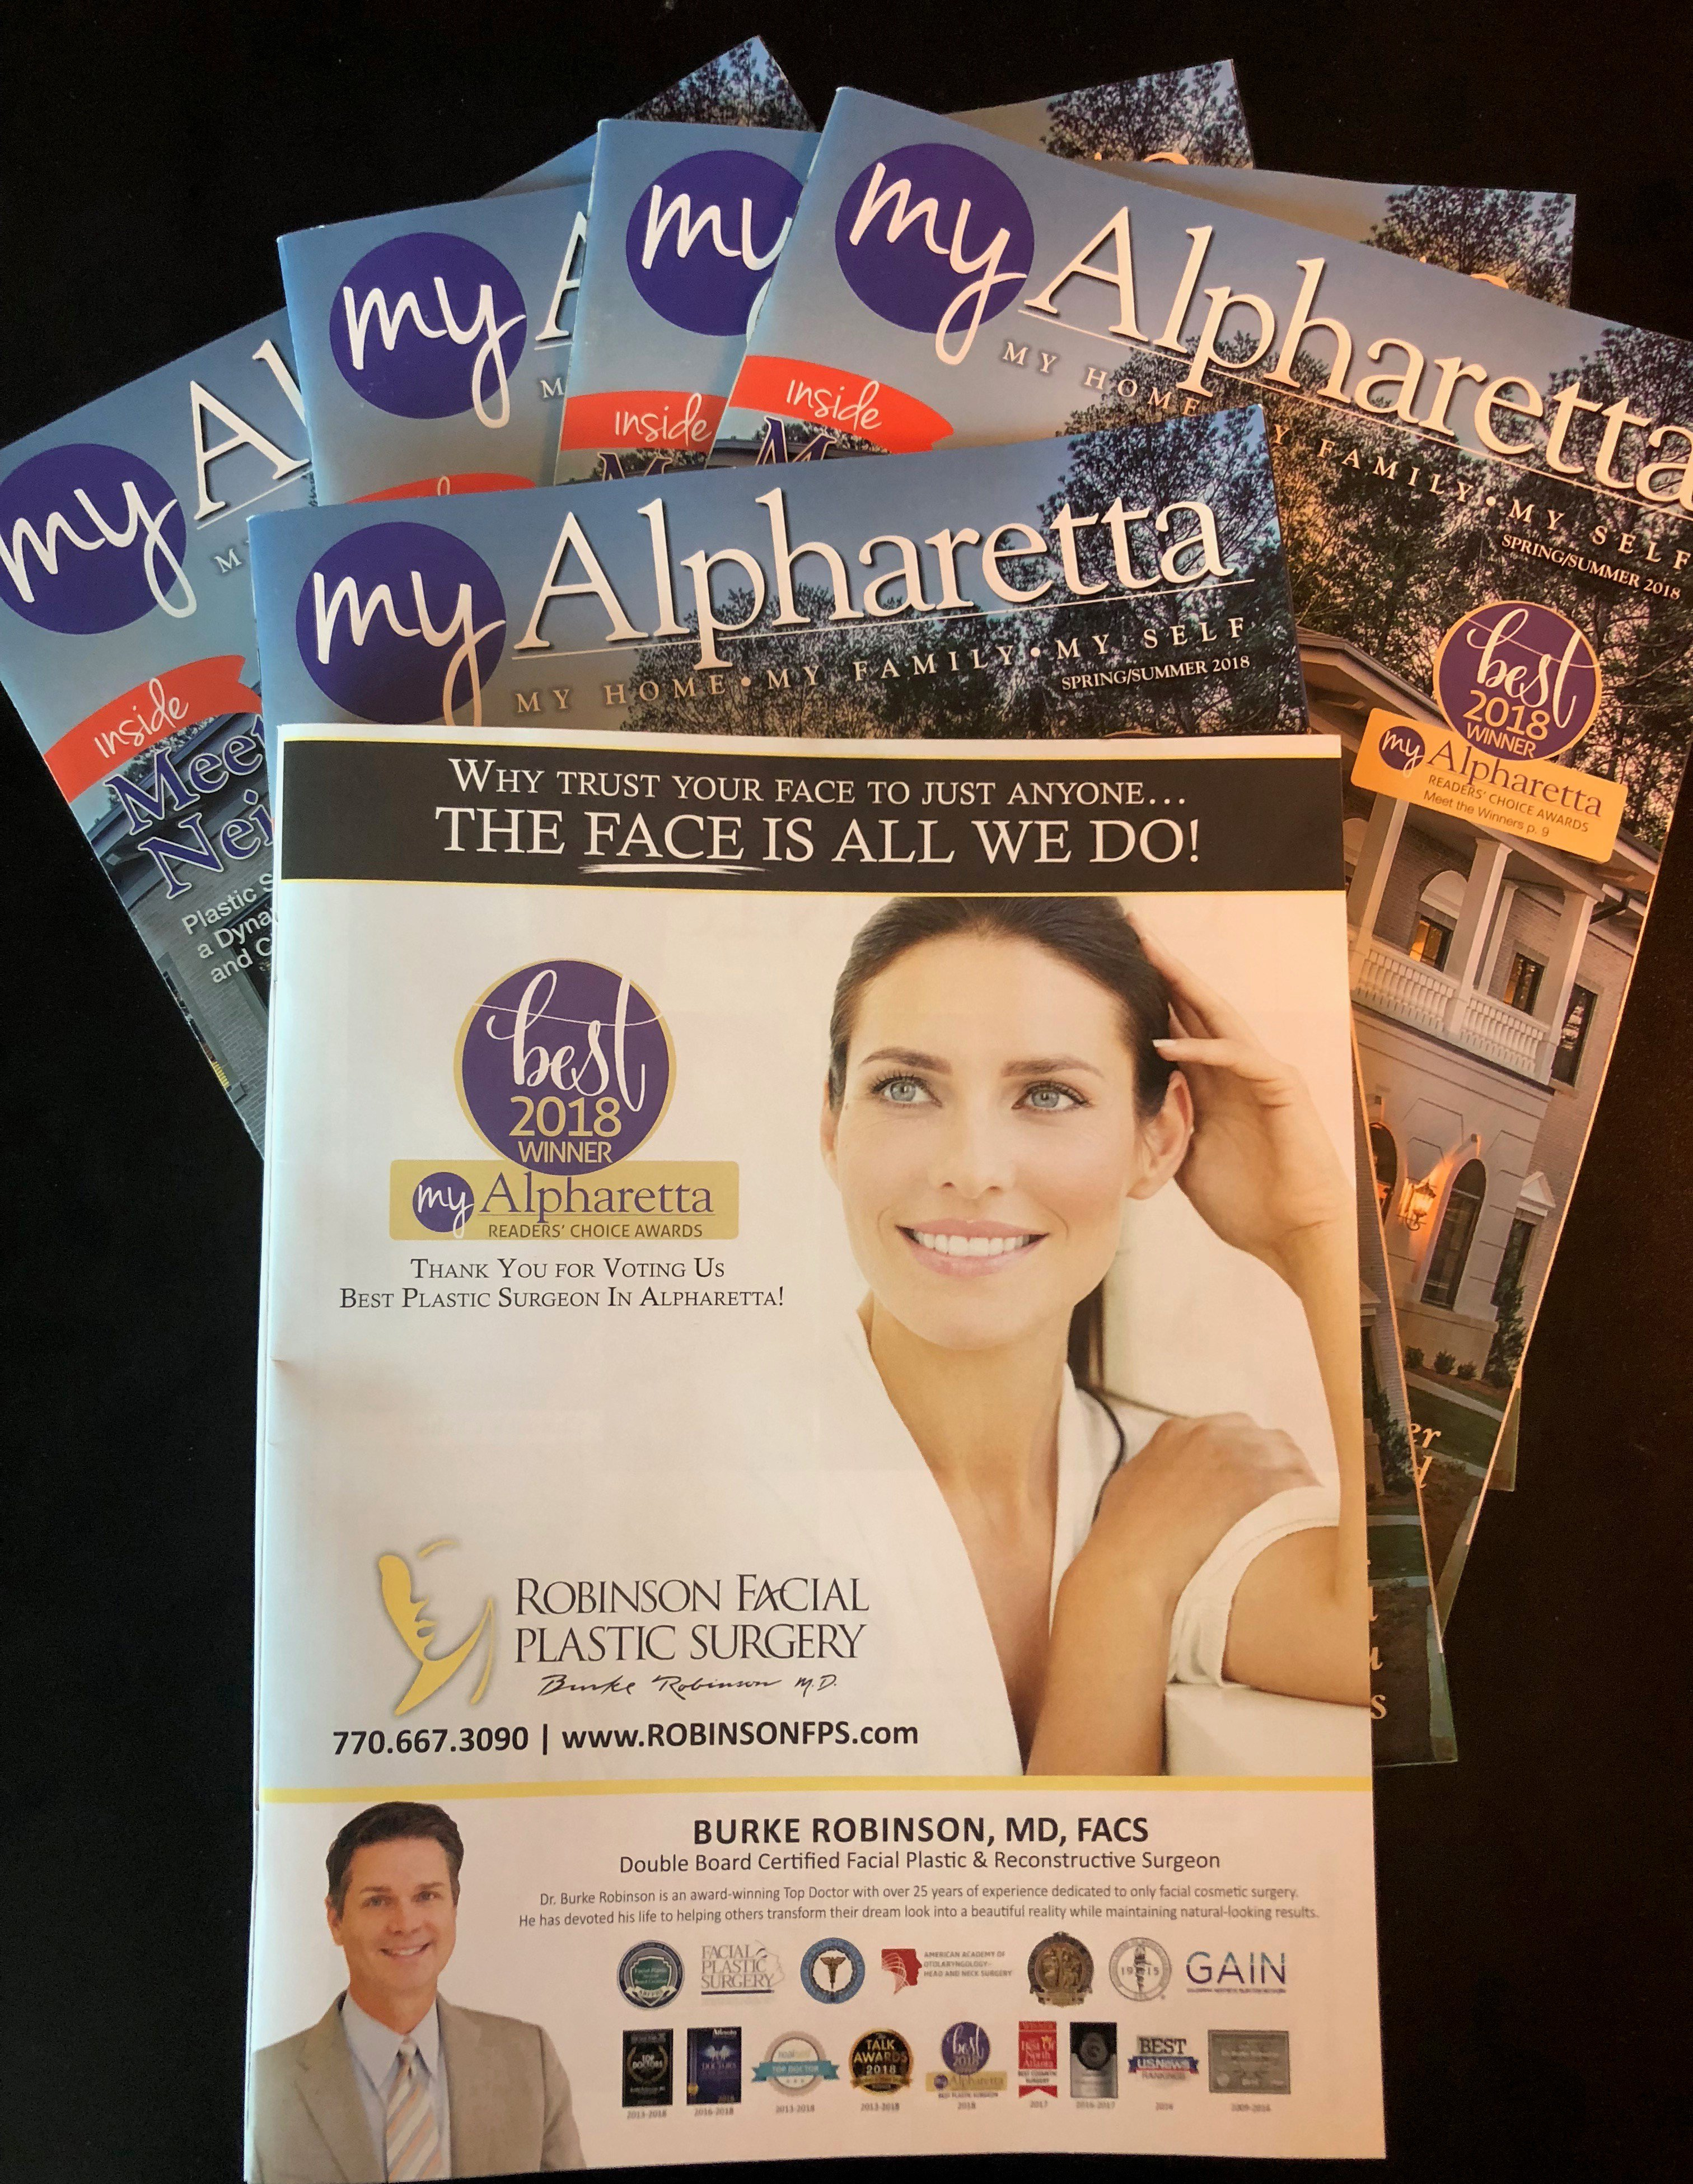 My Alpharetta 2018 Best Plastic Surgeon